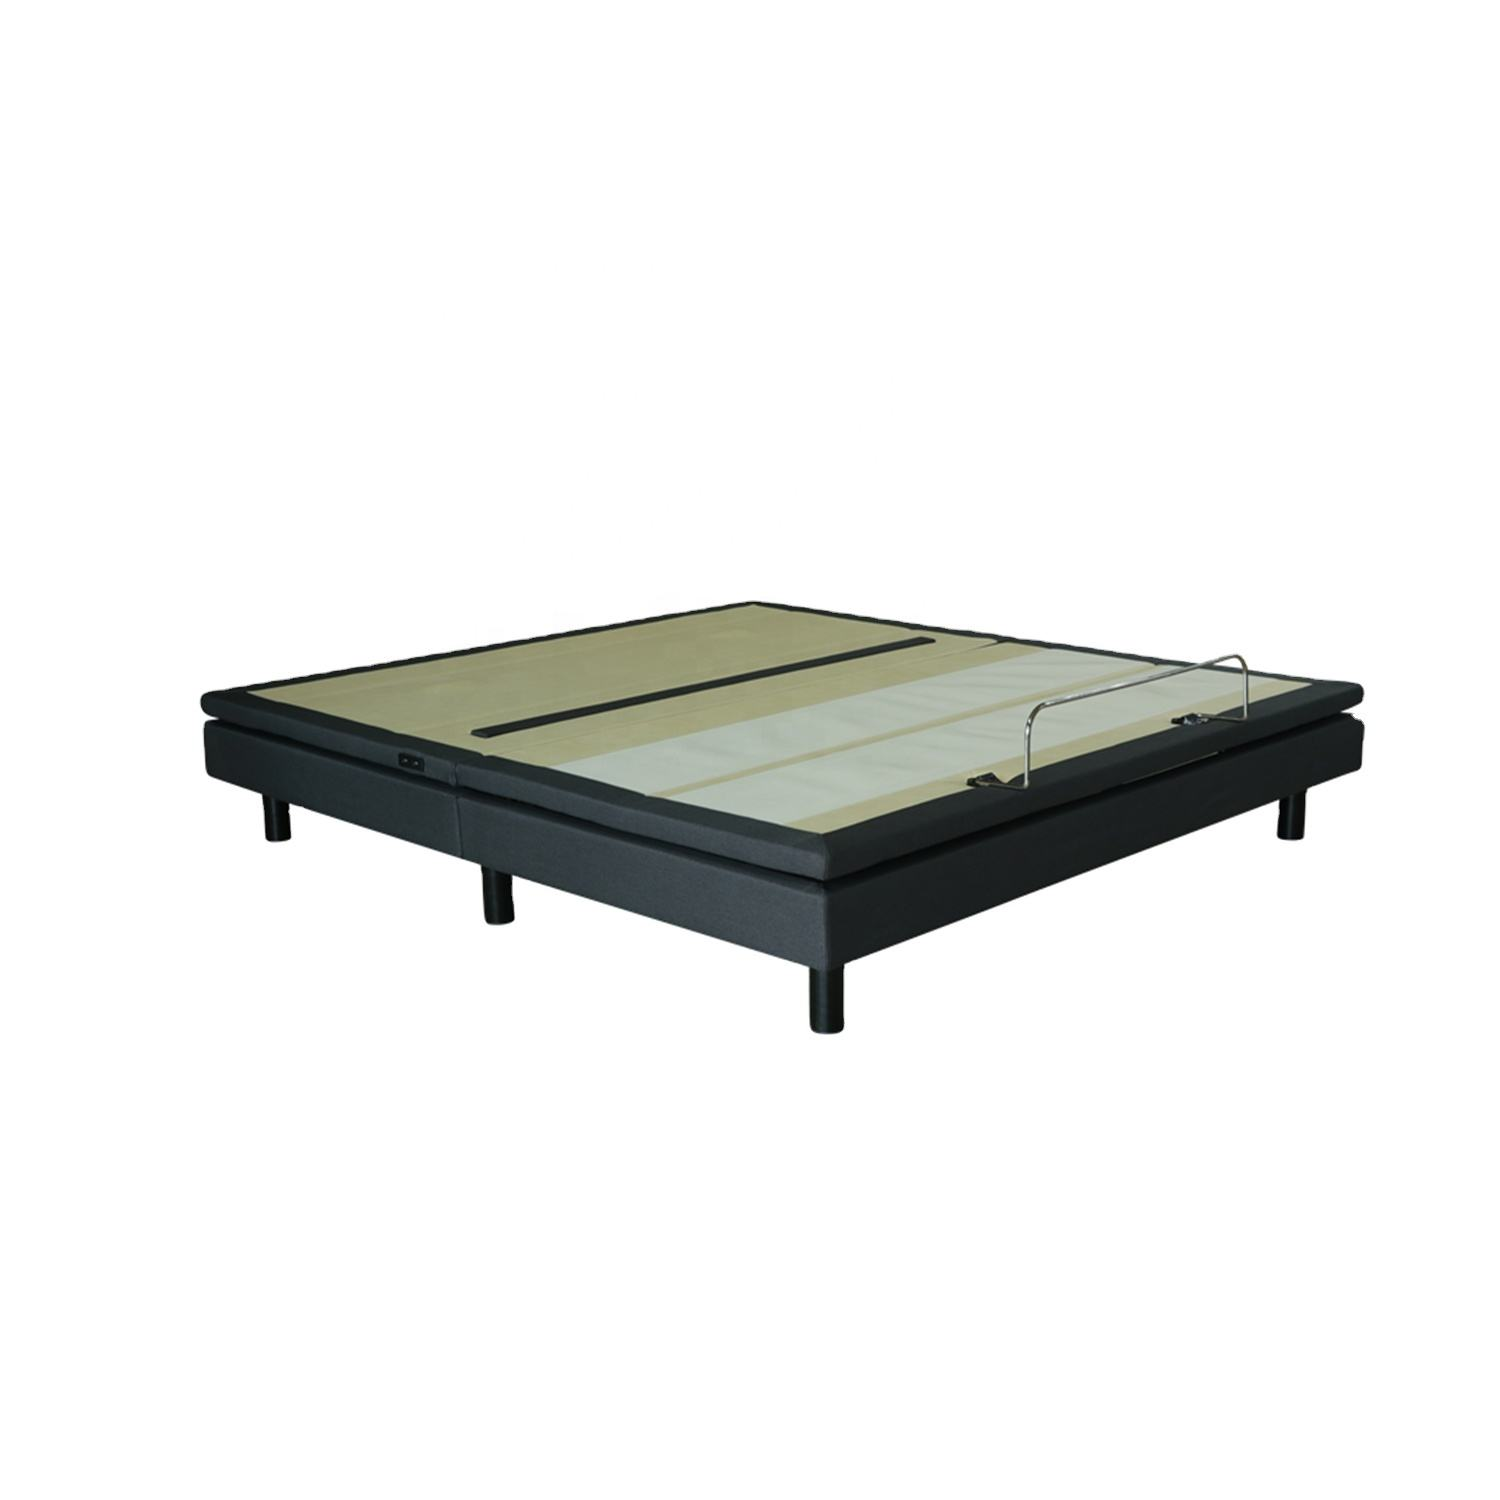 9541 Modern Designs Metal Massage King Size Double Cot Bed with Soft Lights Under the Bed